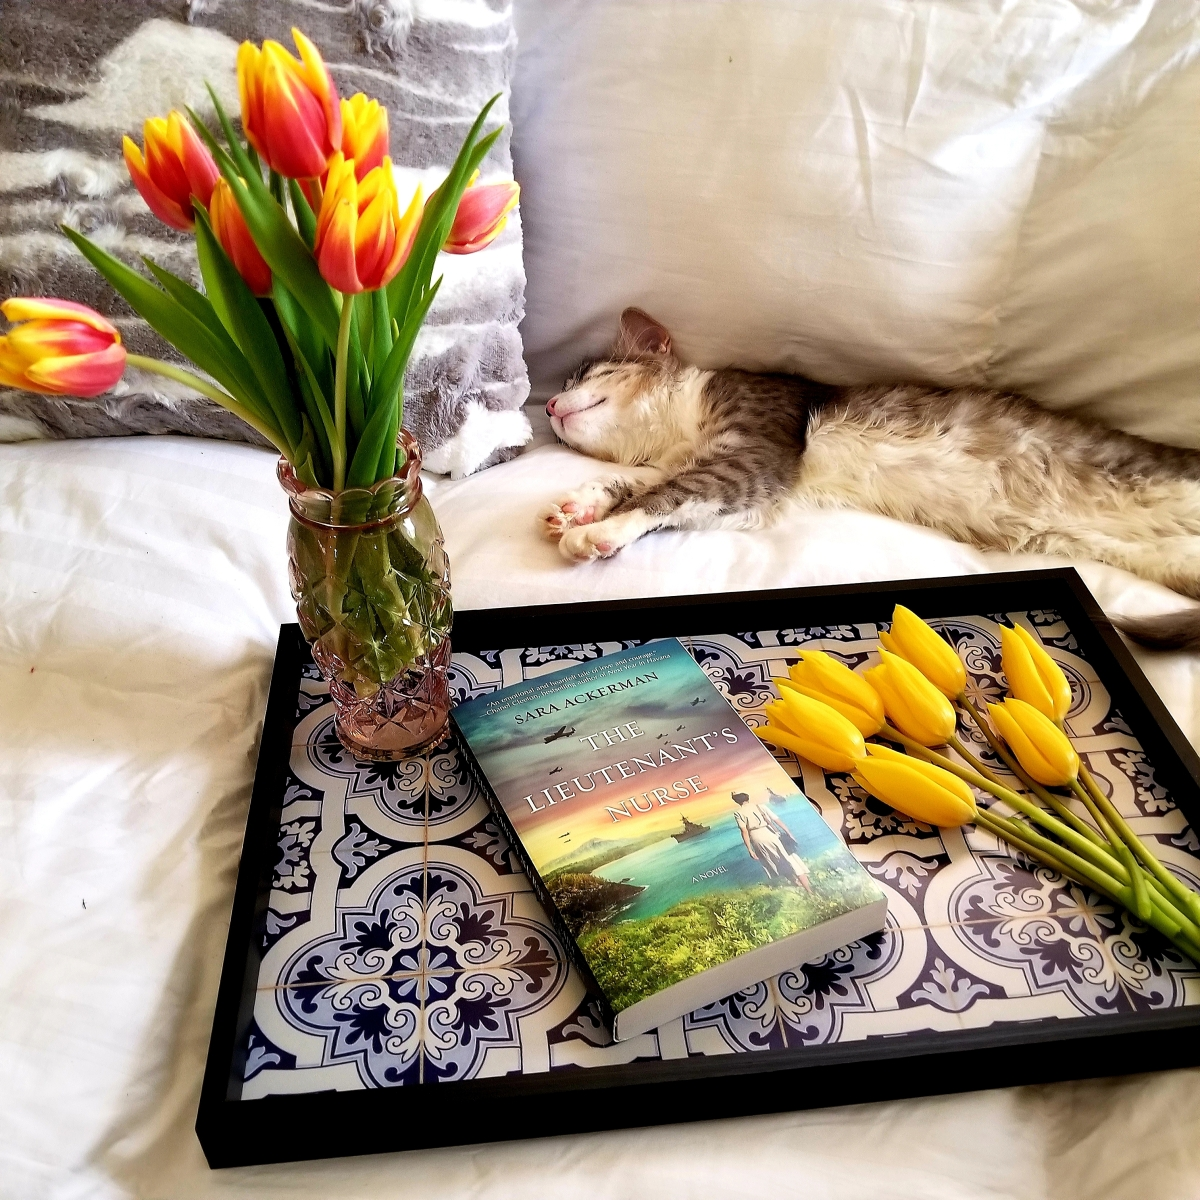 The Lieutenant's Nurse by Sara Ackerman #bookreview #tarheelreader #thrnurse @ackermanbooks @harlequinbooks #mira @tlcbooktours #thelieutenantsnurse #blogtour